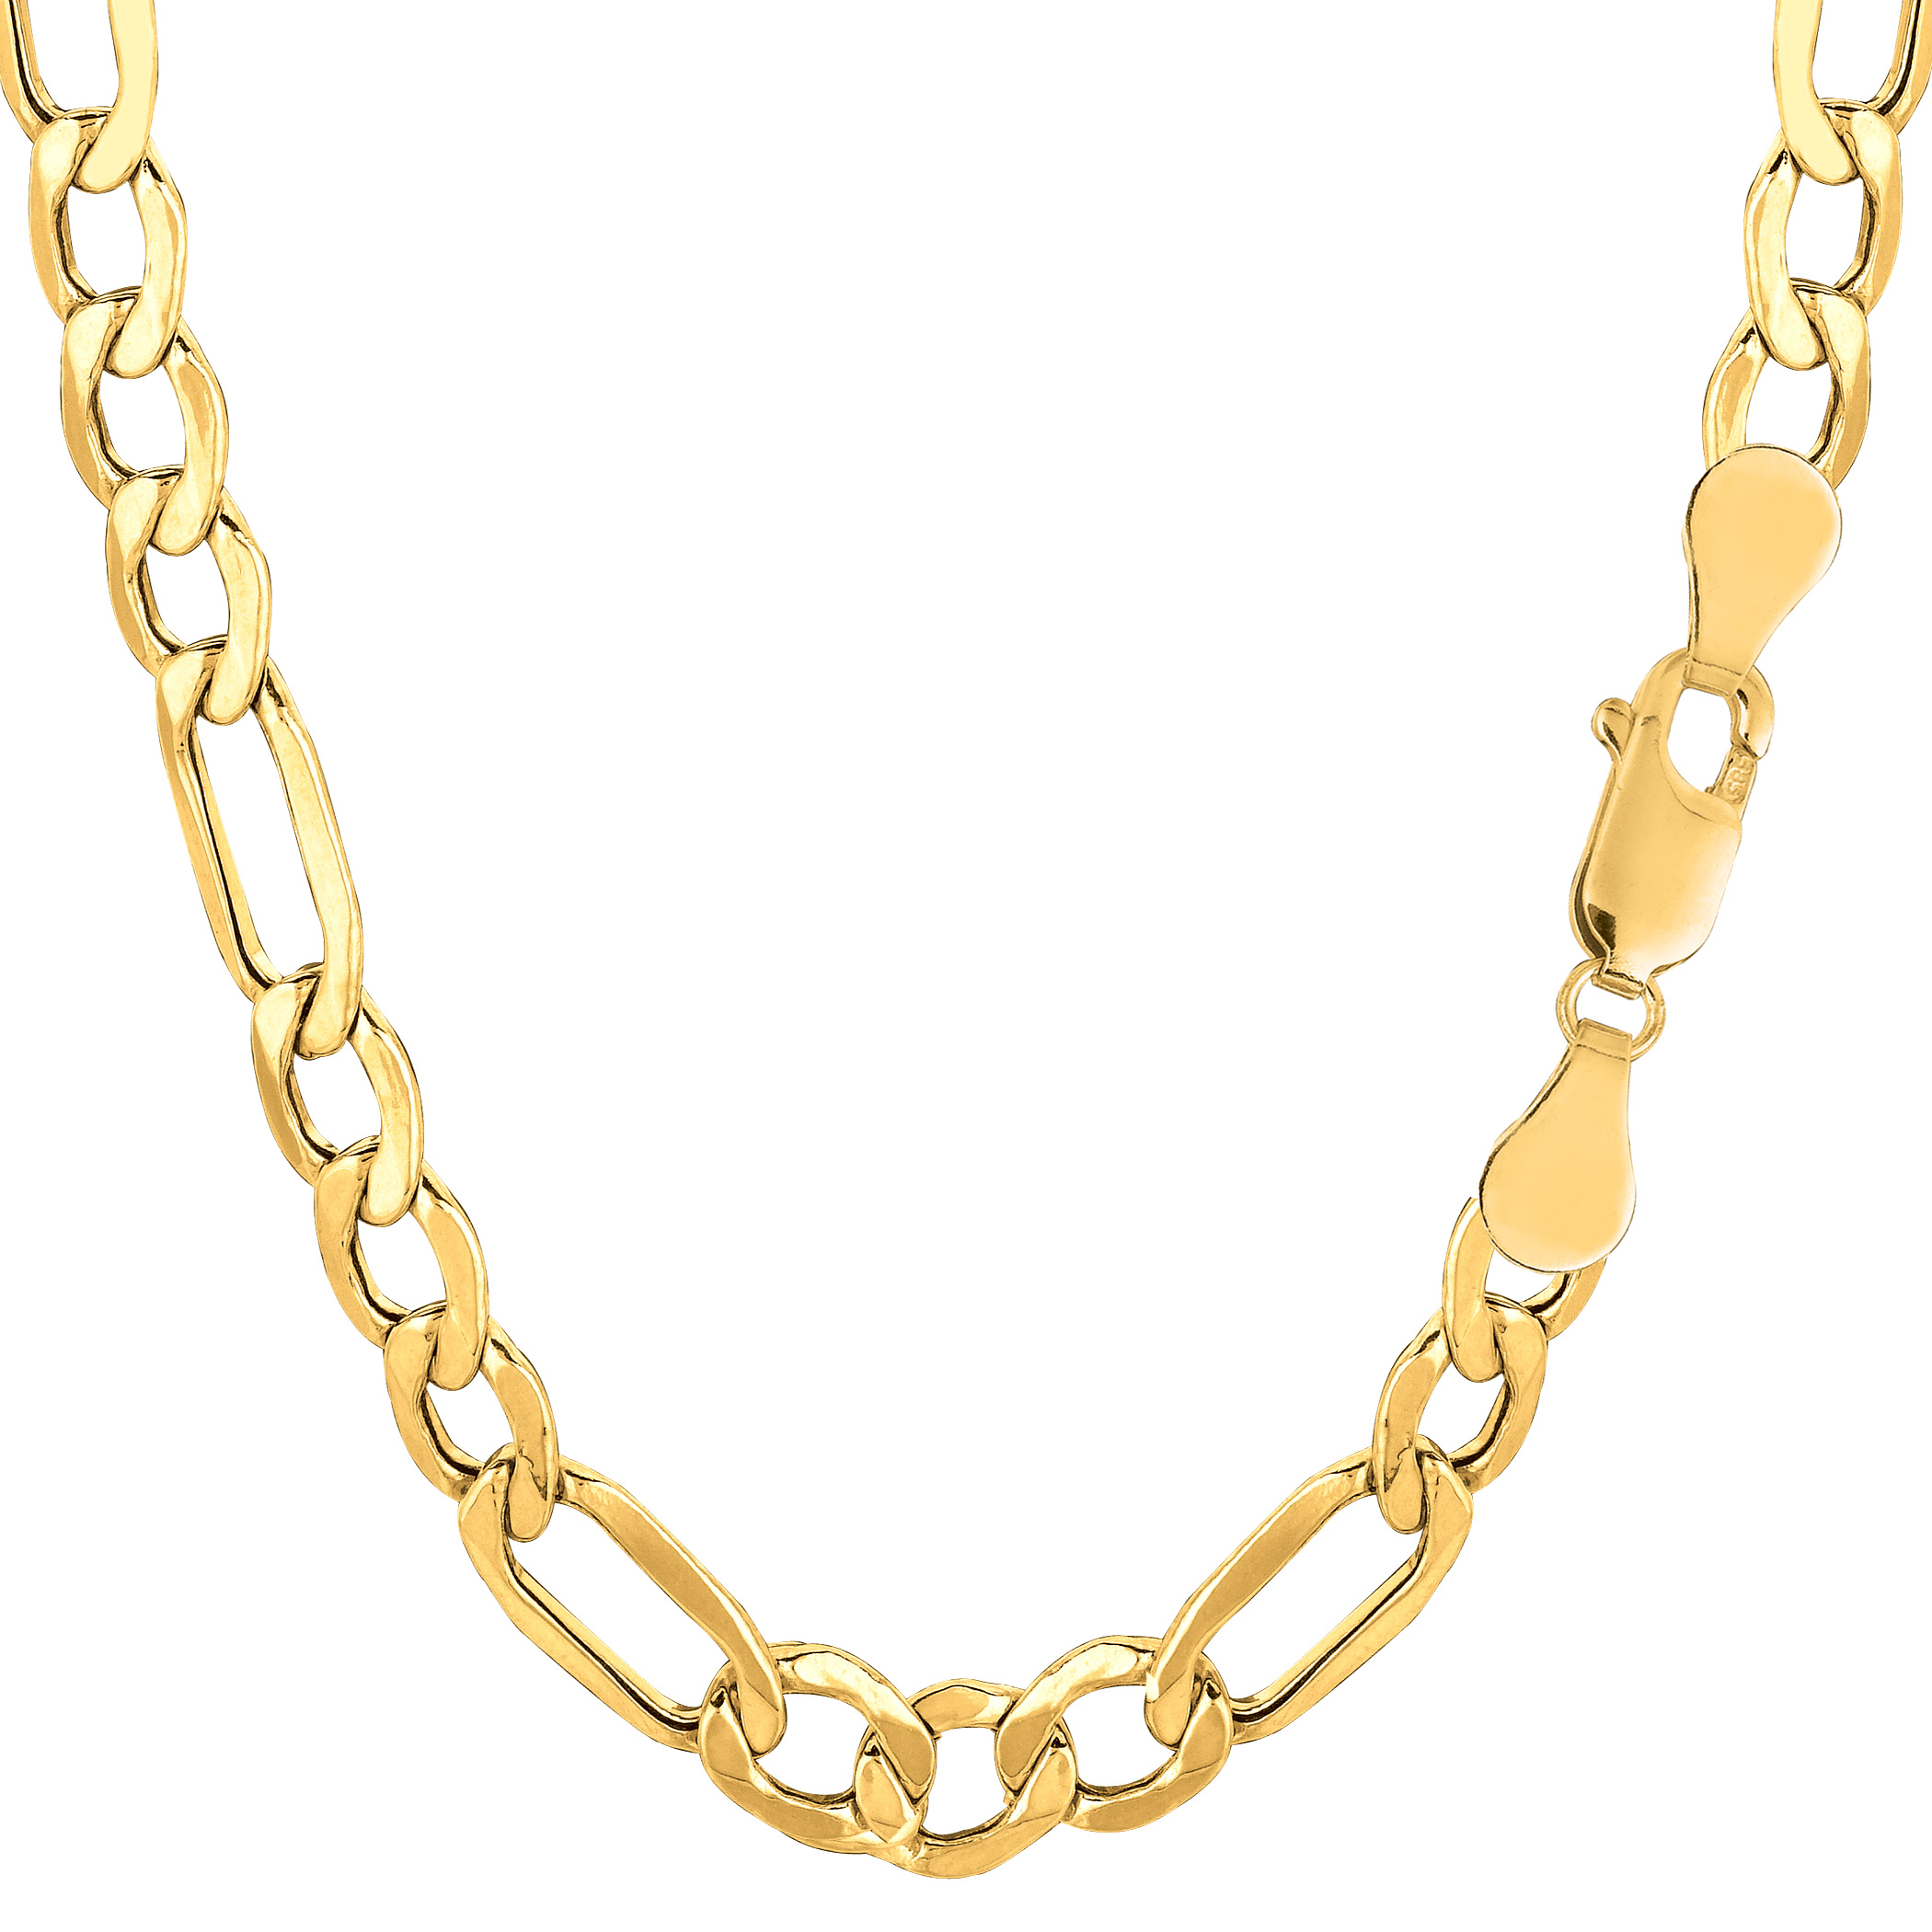 10k Yellow Gold Hollow Figaro Bracelet Chain, 6.5mm, 8.5″